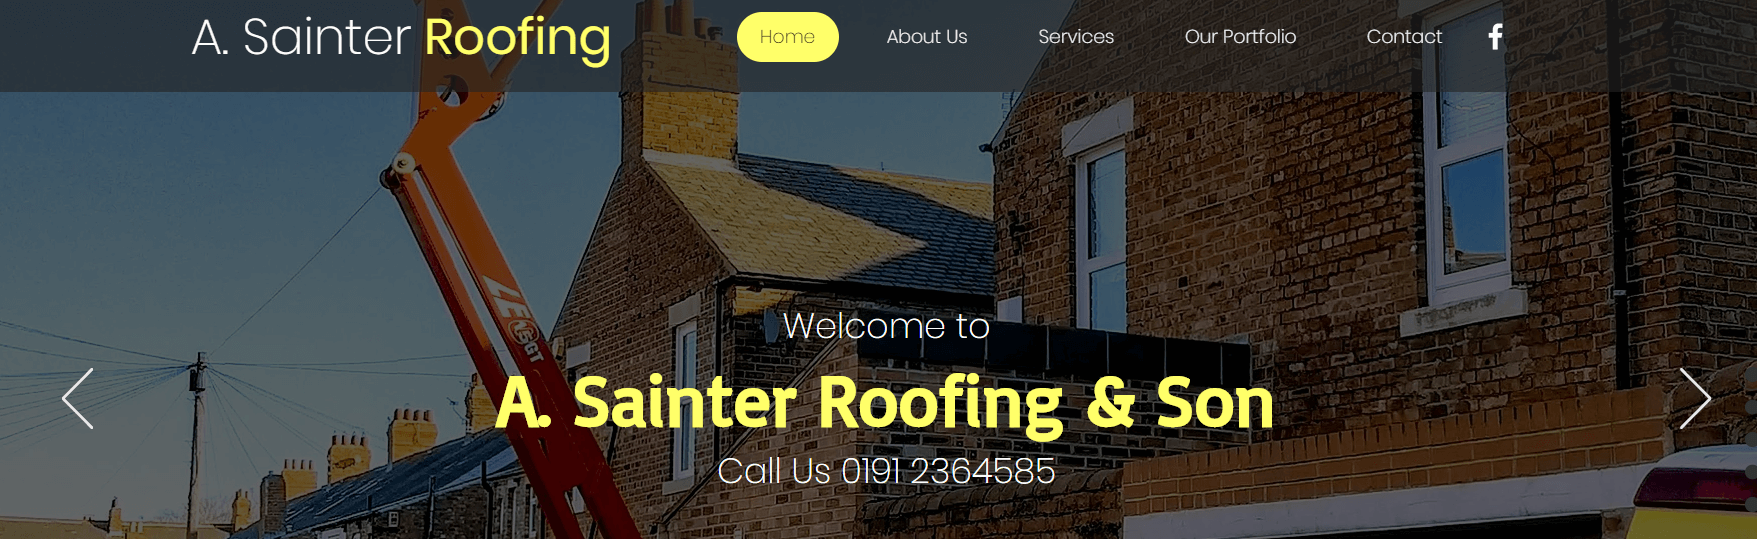 A Sainter Roofing Services' Homepage